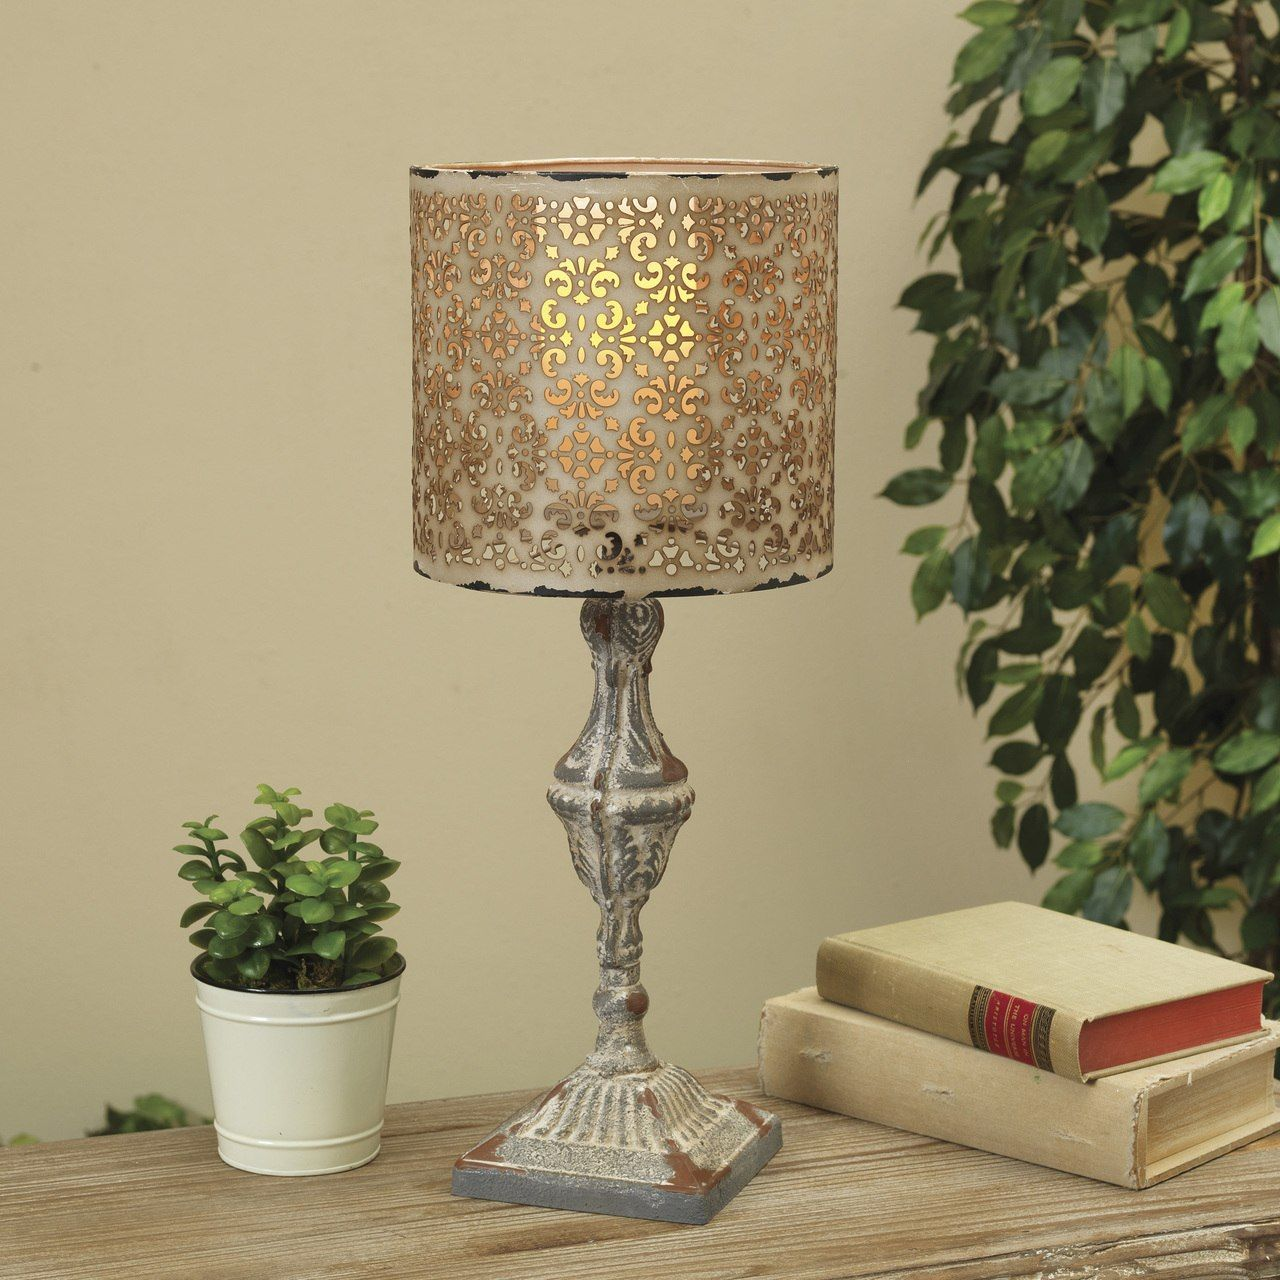 Pedestal candle holder with metal lamp shade 2253090 195 pedestal candle holder with metal lamp shade 2253090 mozeypictures Image collections